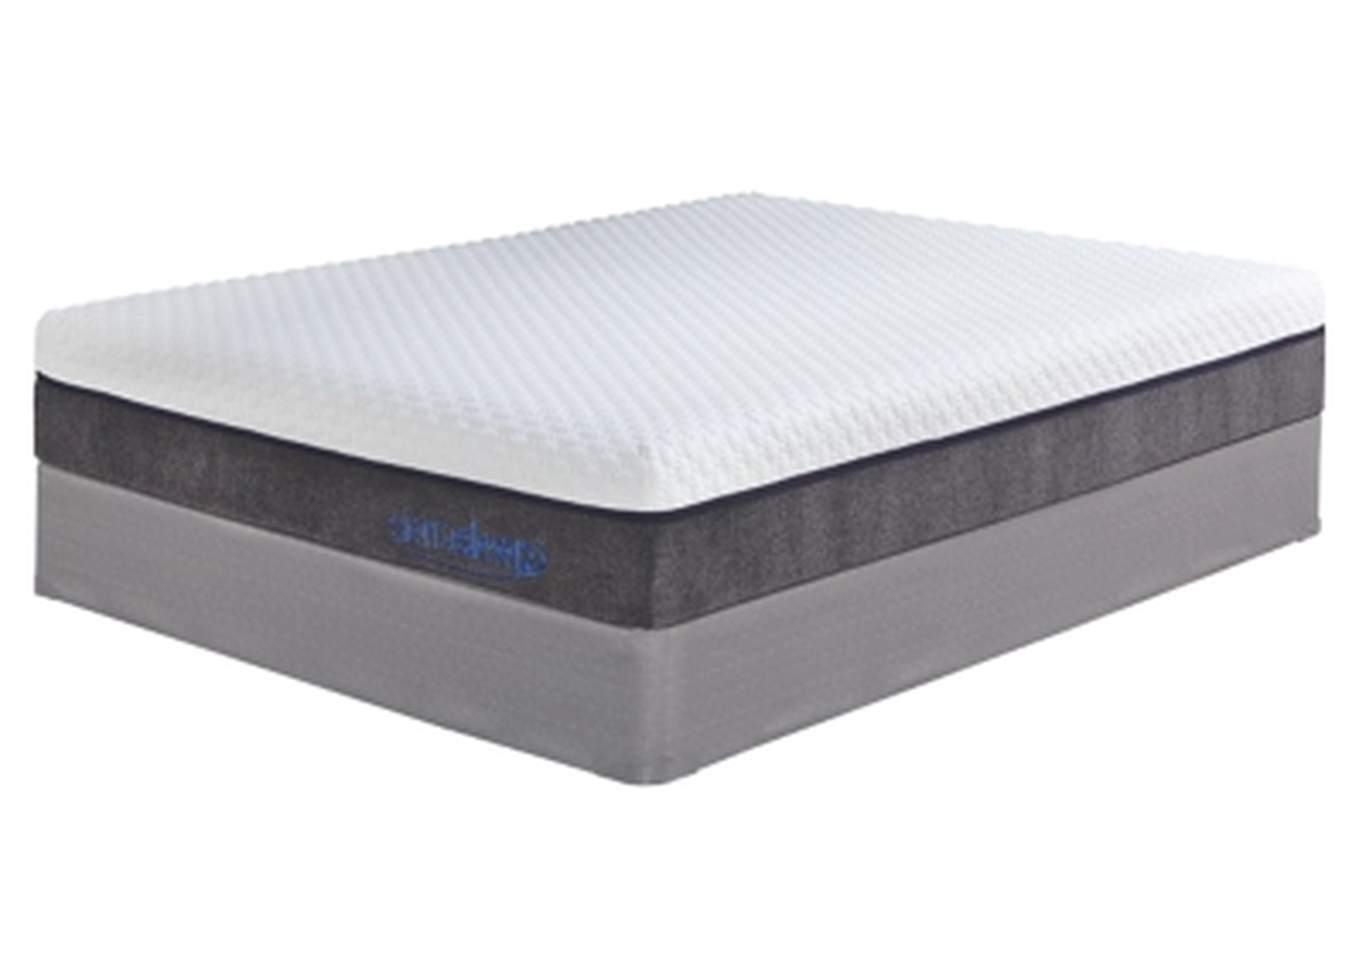 Mygel Hybrid 1100 Twin Mattress,Sierra Sleep by Ashley